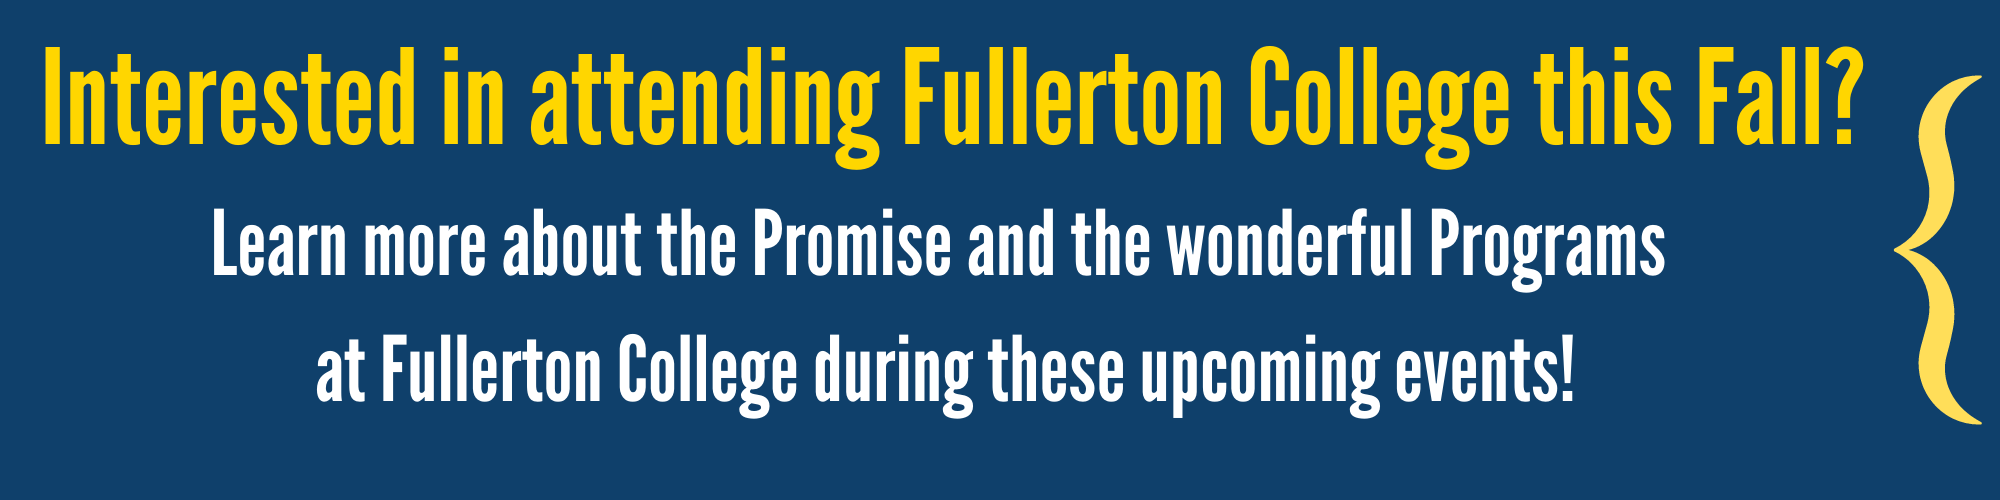 Interested in Attending Fullerton College this Fall? Learn more about the Promise and the wonderful programs at Fullerton College during these events! (Bracket points to two buttons on the right side of the screen)